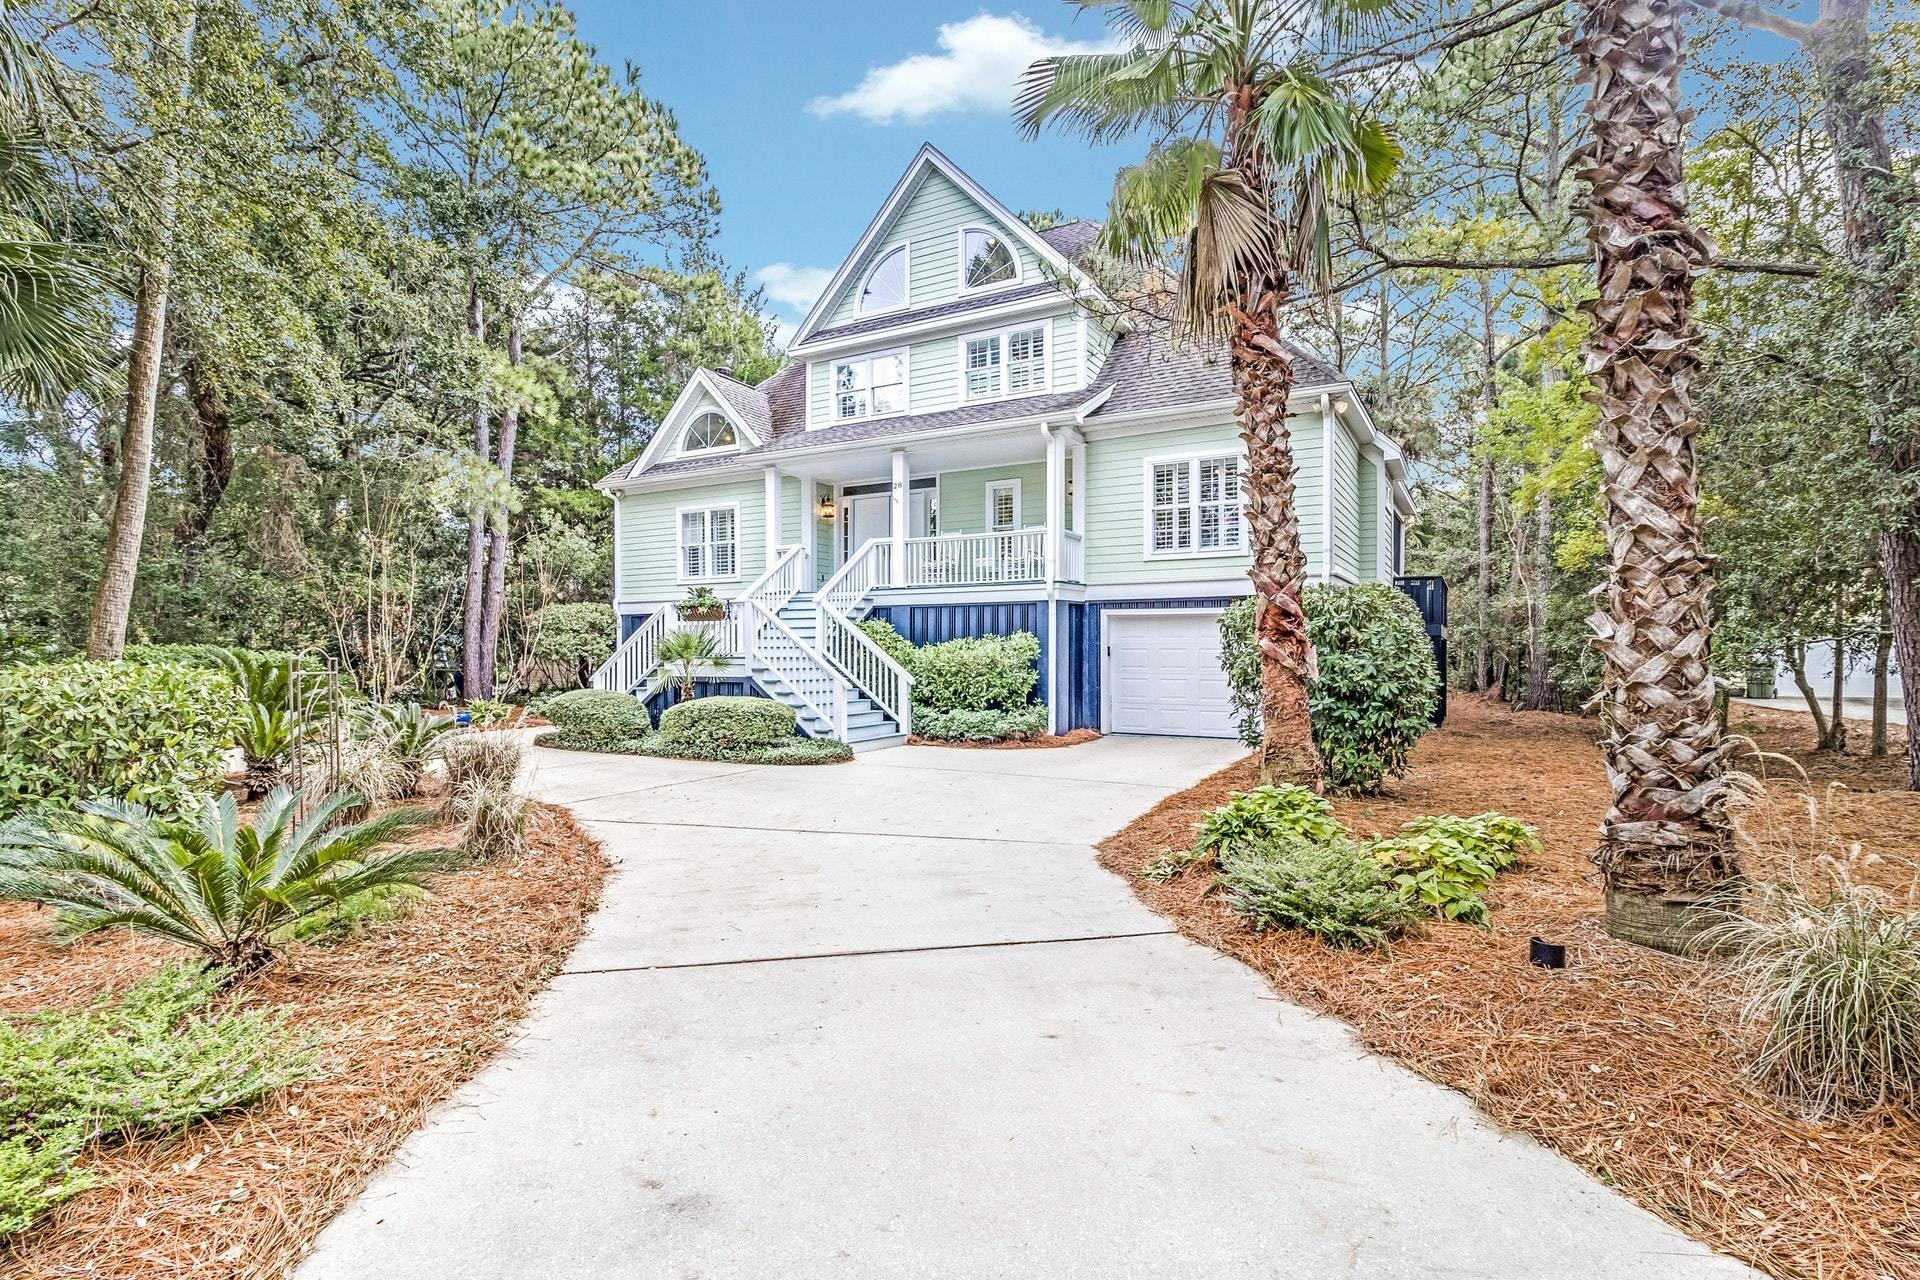 Wild Dunes Homes For Sale - 28 Edgewater Alley, Isle of Palms, SC - 35